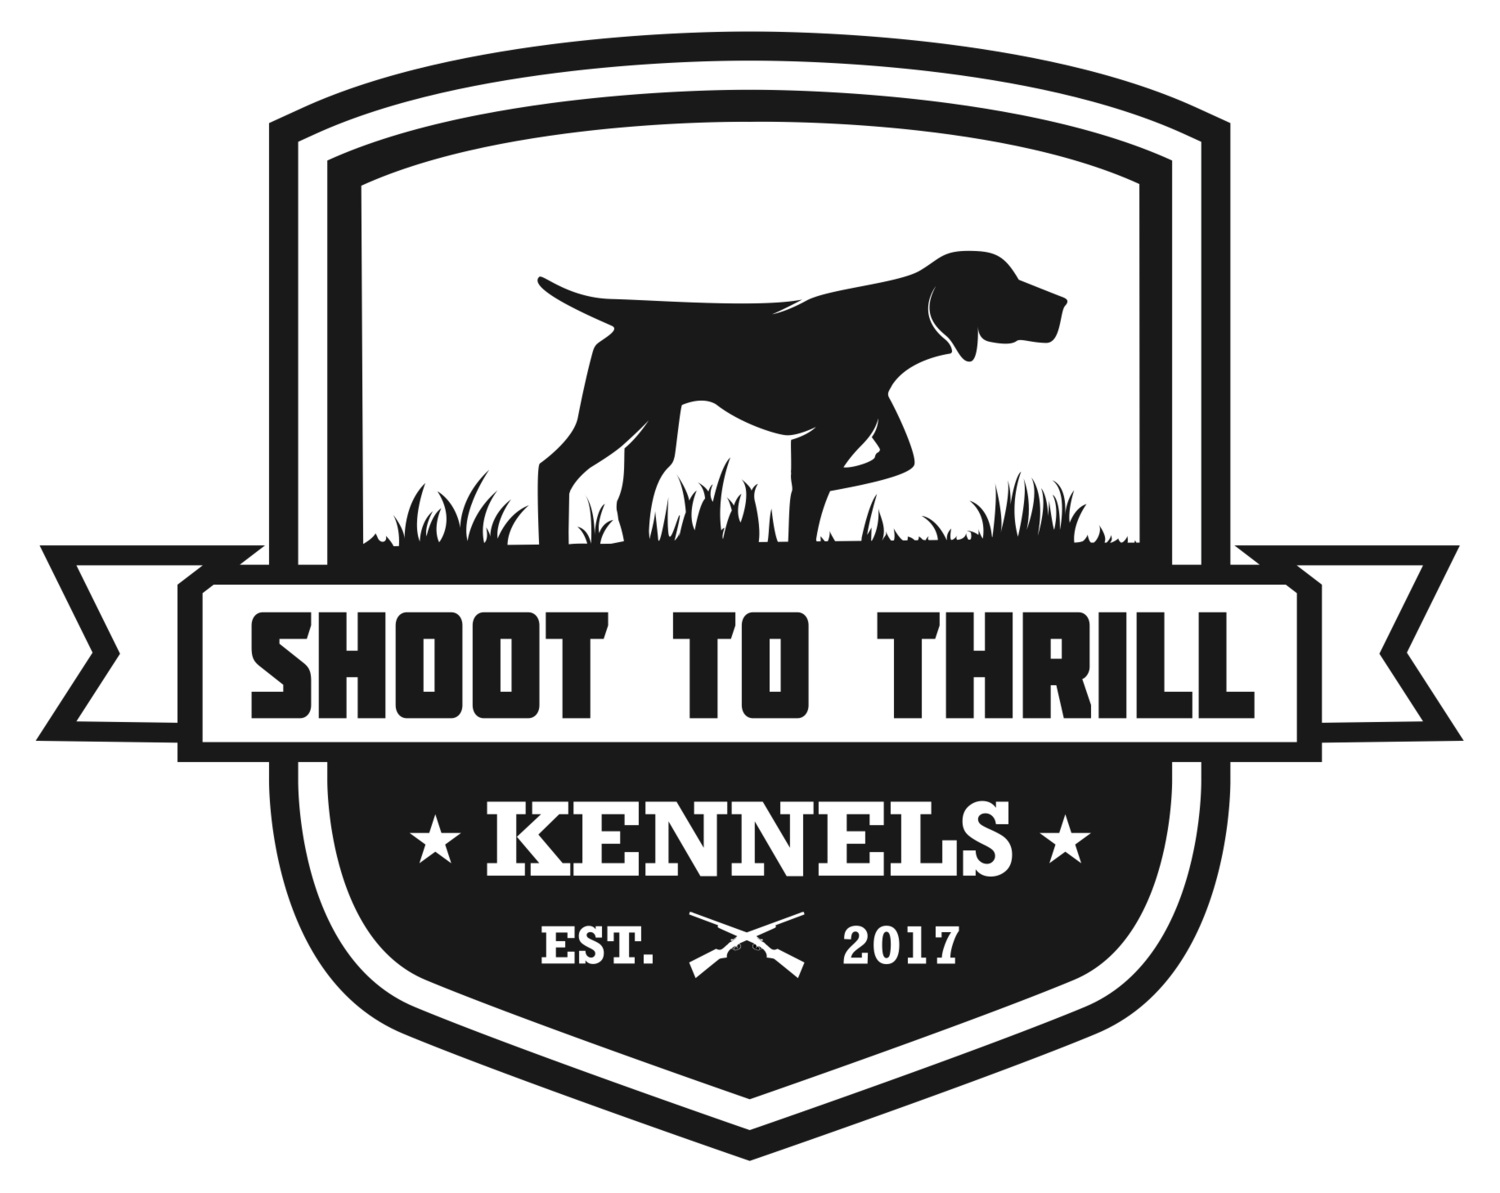 SHOOT TO THRILL KENNELS